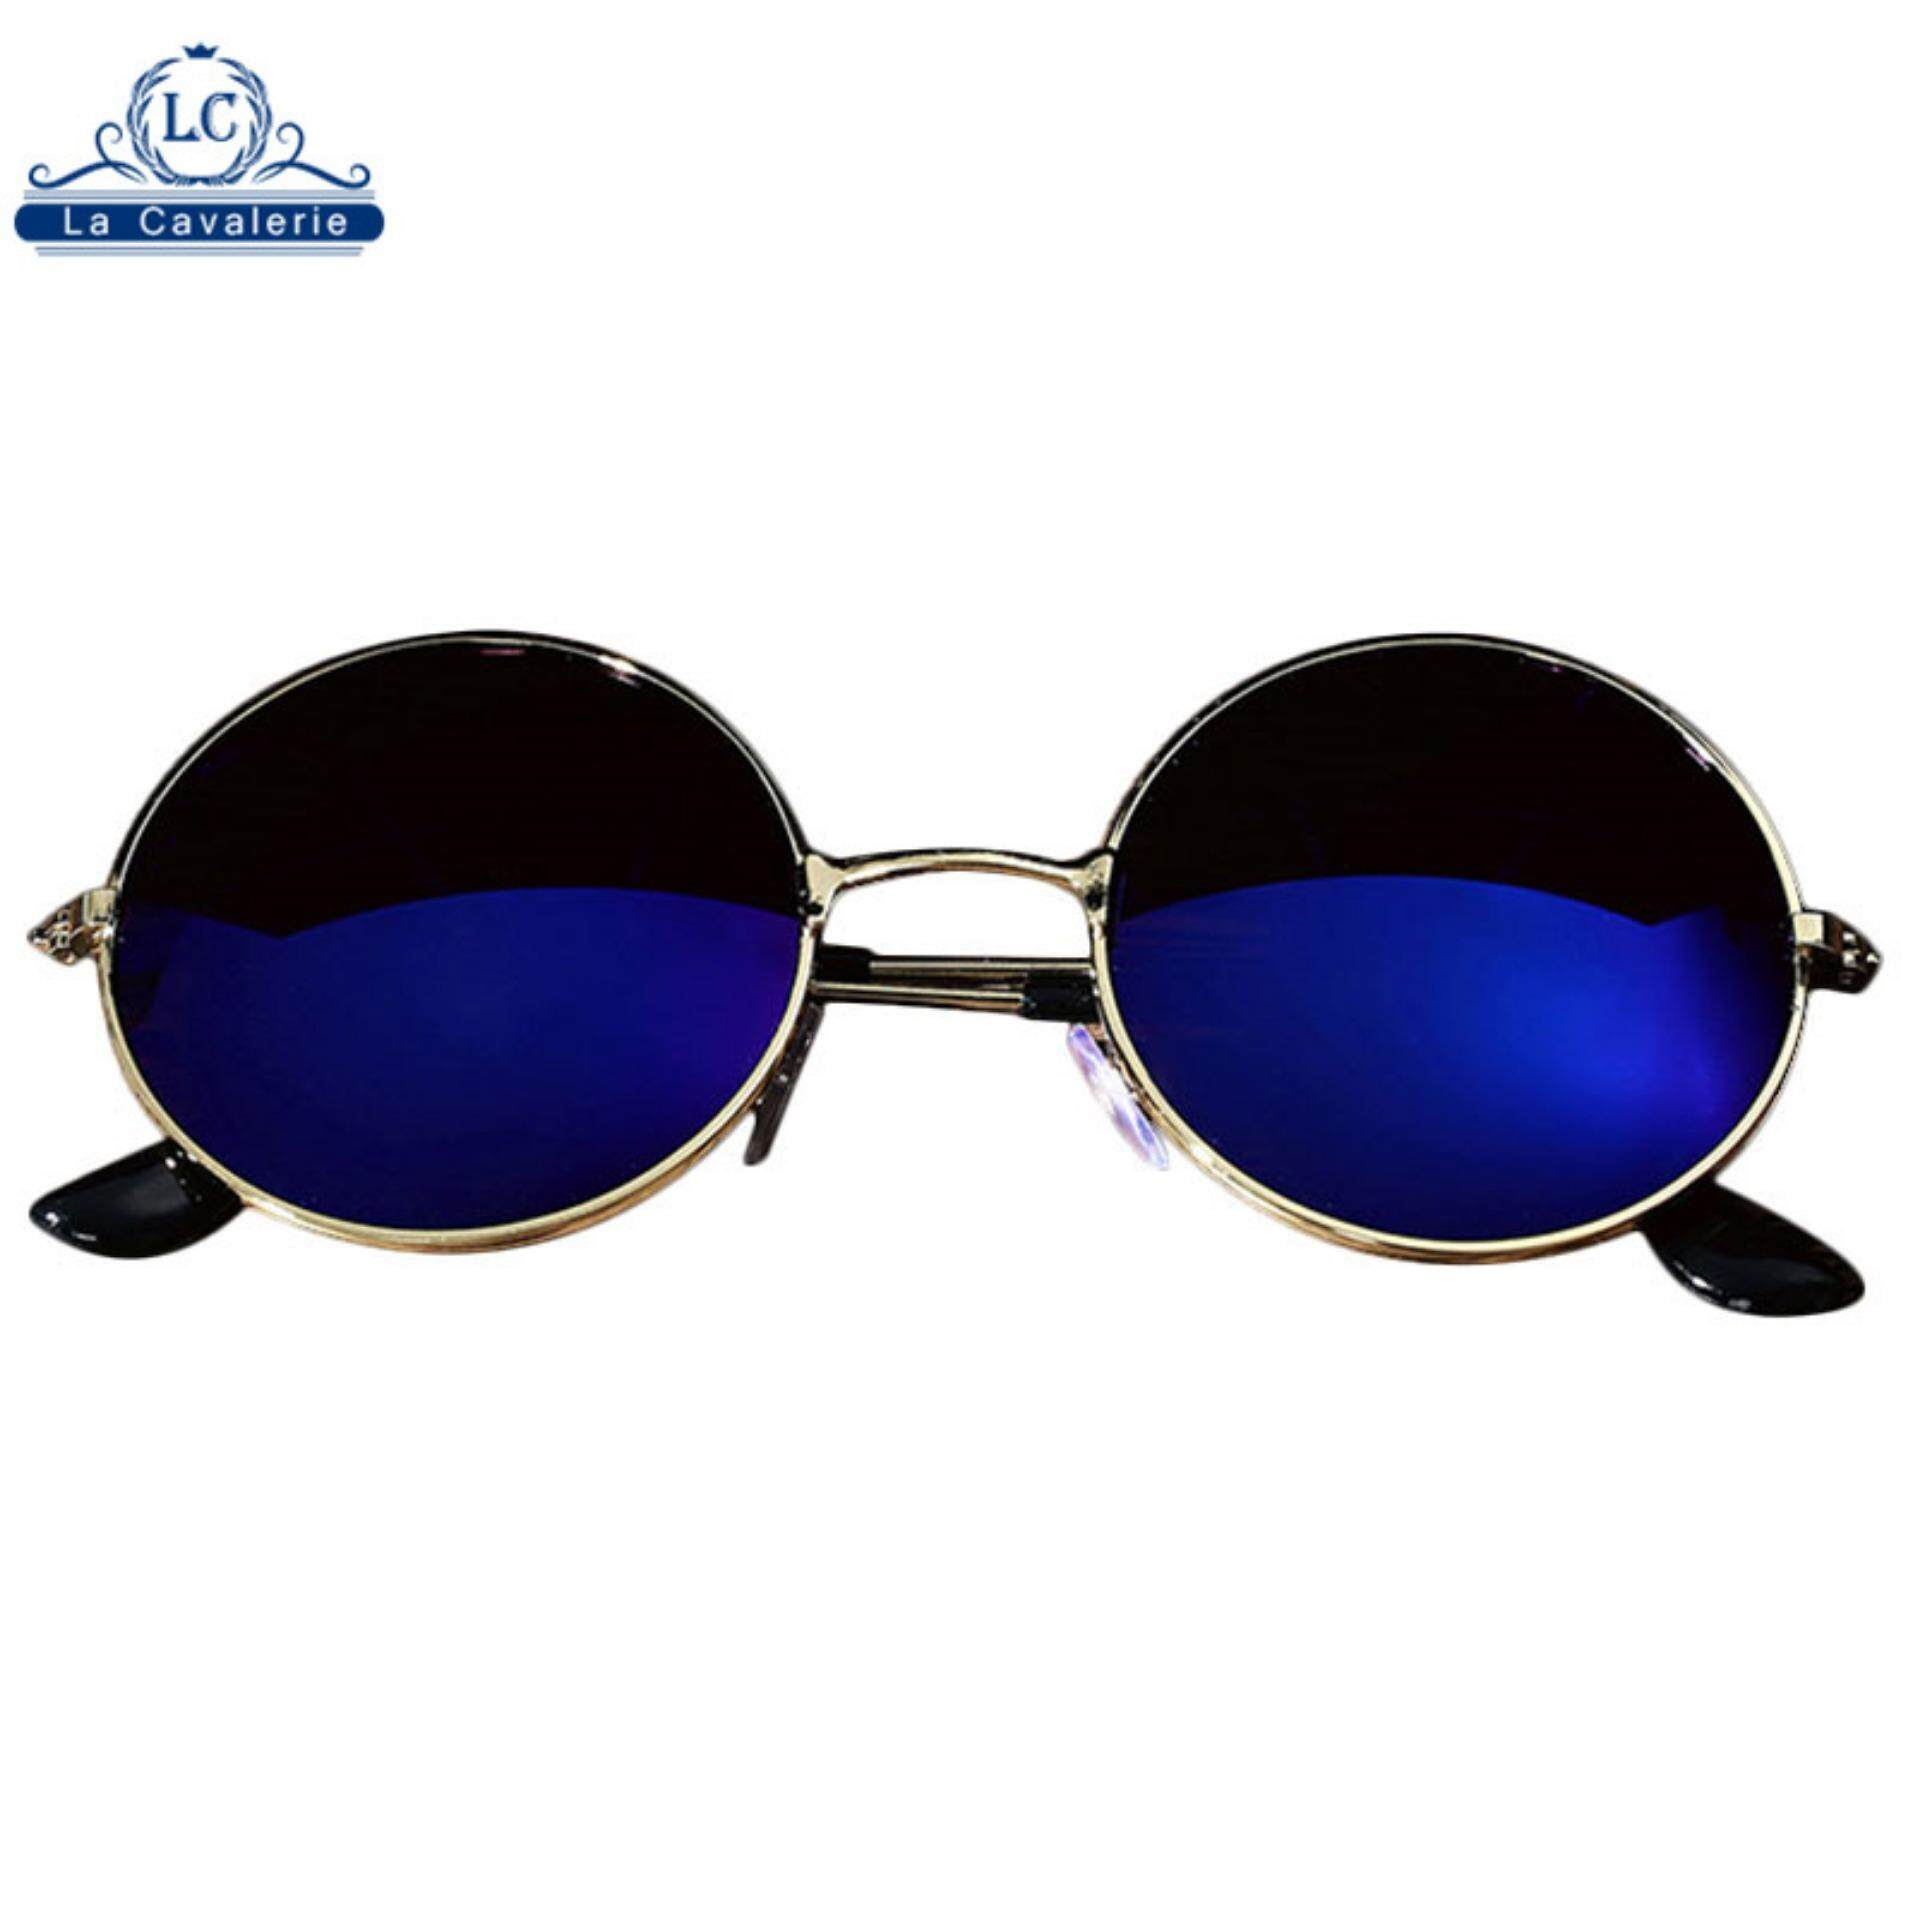 af817a4f0695 Cool and fashionable Men Women Retro Vintage Round Mirrored Sunglasses  Eyewear Outdoor Glasses